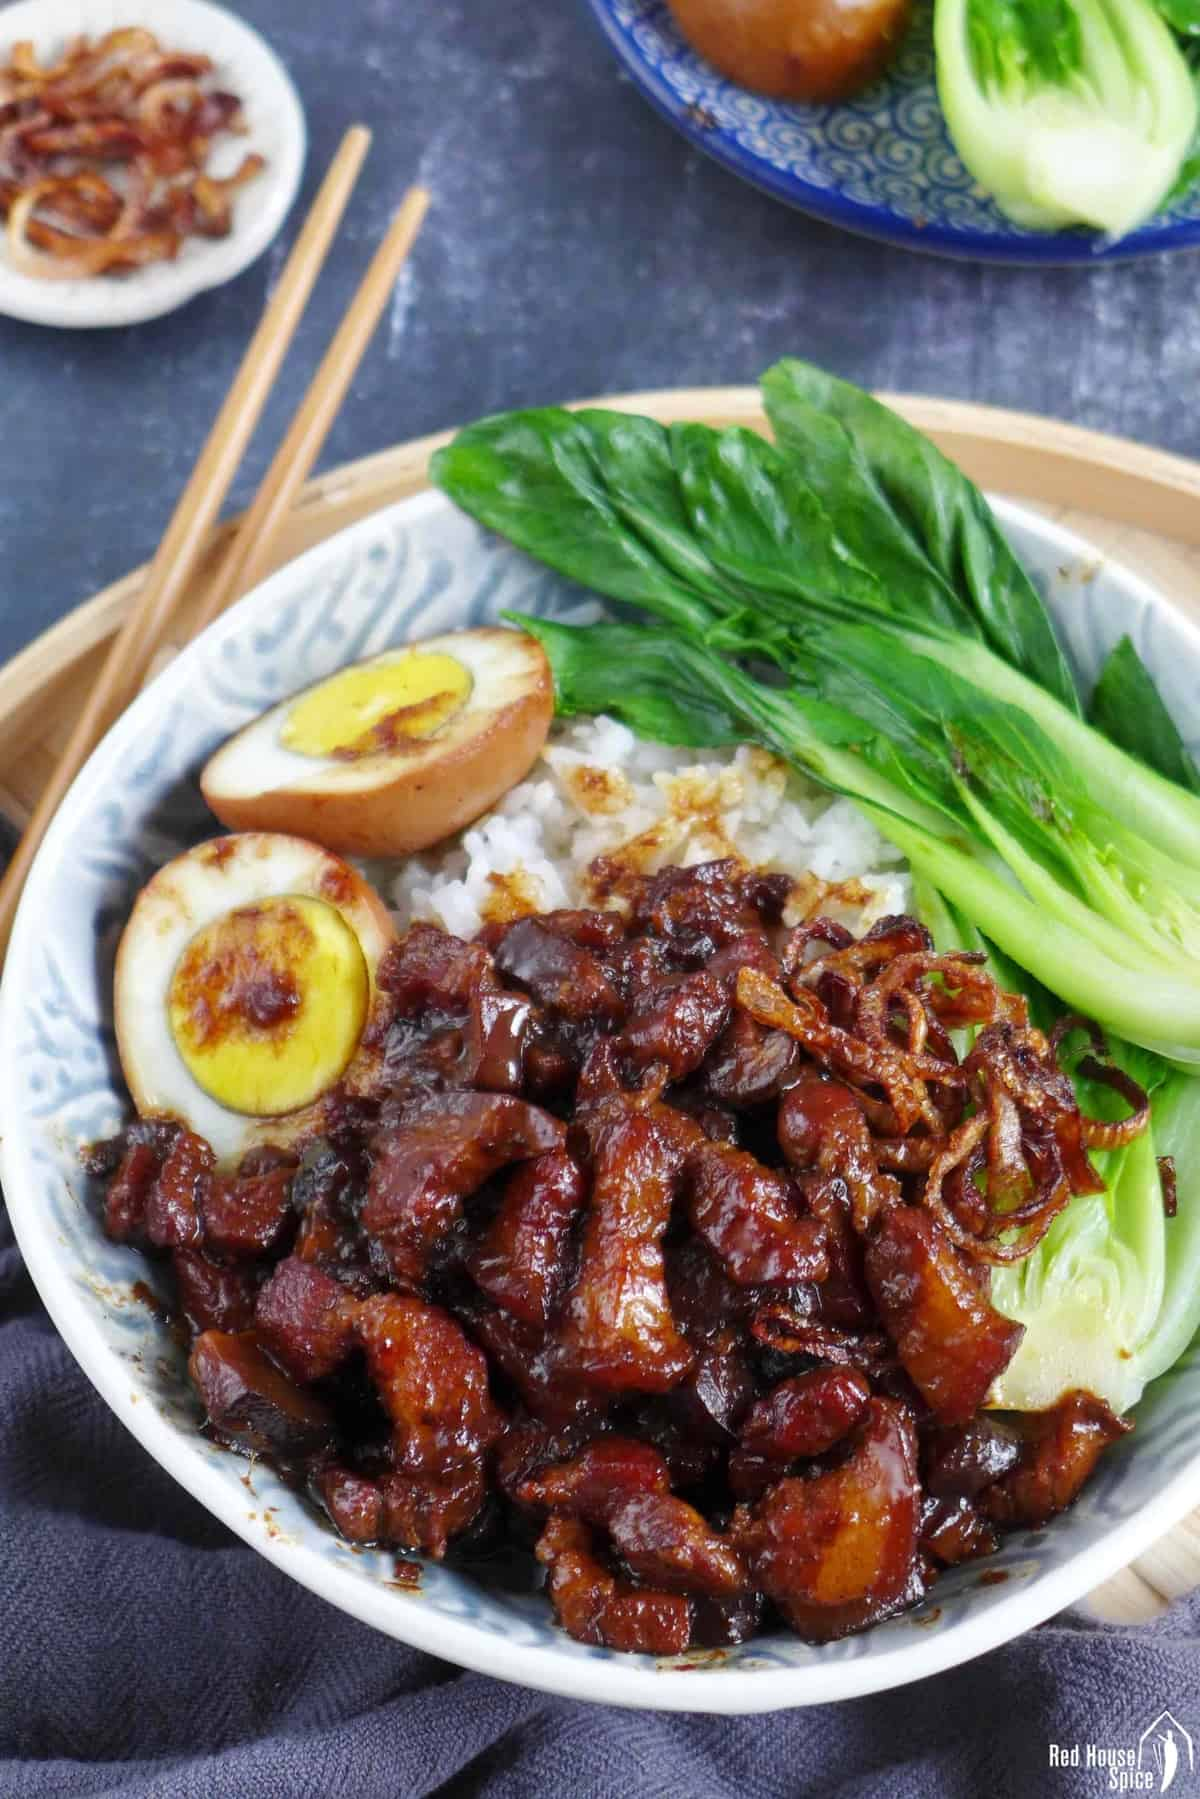 A bowl of Taiwanese Lu Rou Fan consisting of braised pork, hard boiled egg, Bok Choy and rice